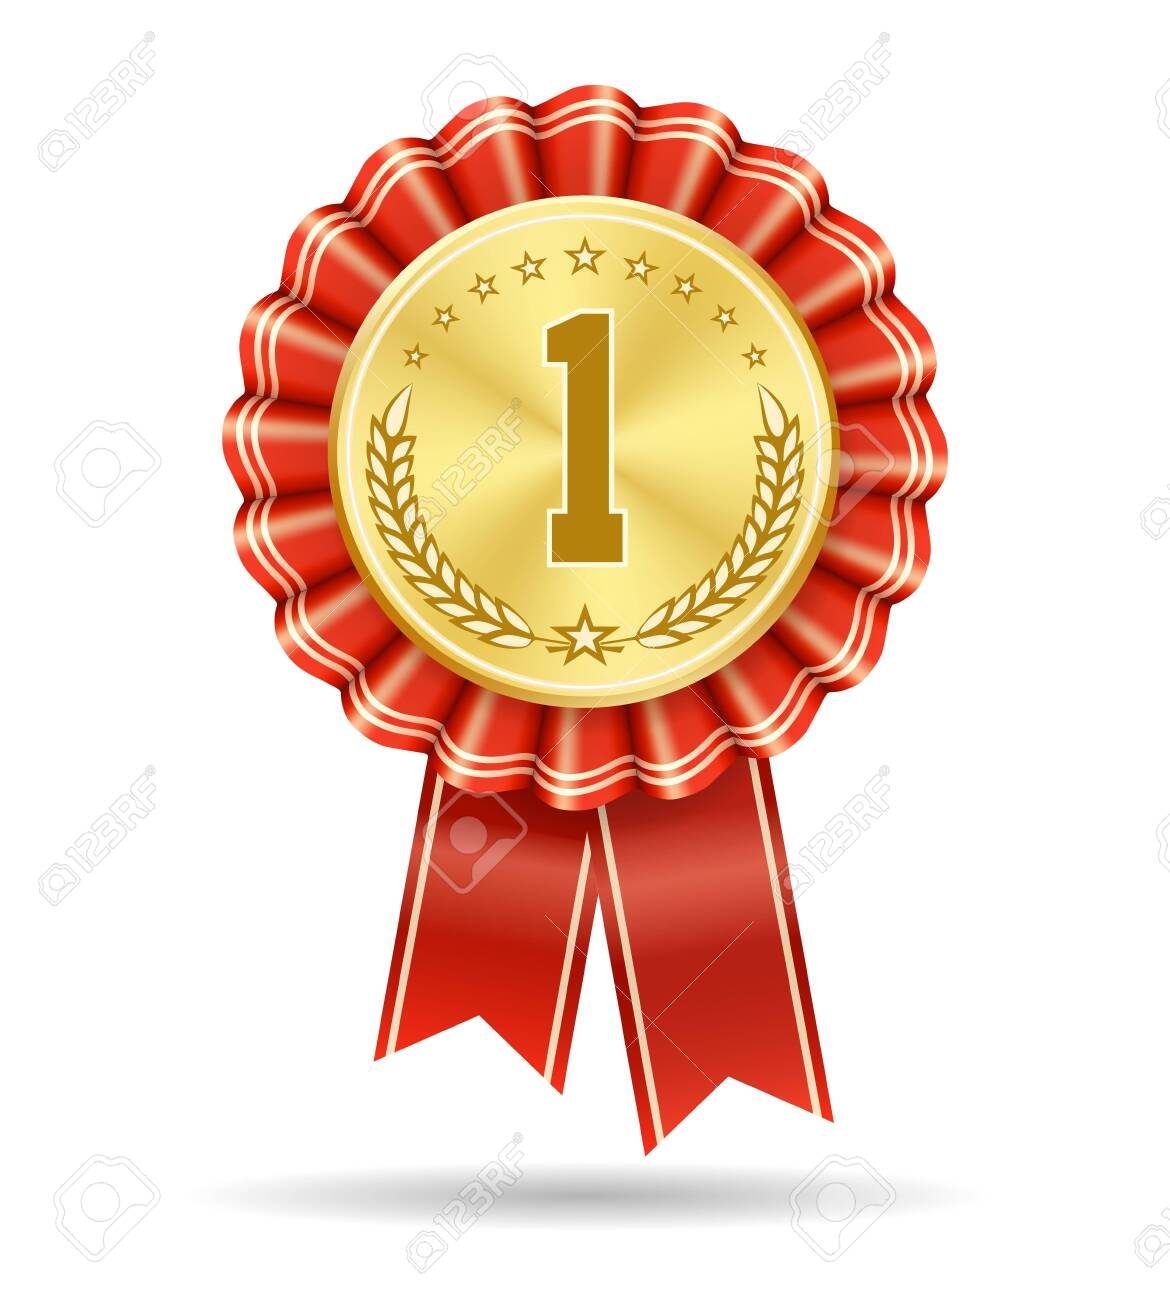 Winner gold medal badge. No 1 vector sign isolated on white, first place medallic symbol, win product number one honor ribbon design, success trophy or leadership achievement seal - 132166120